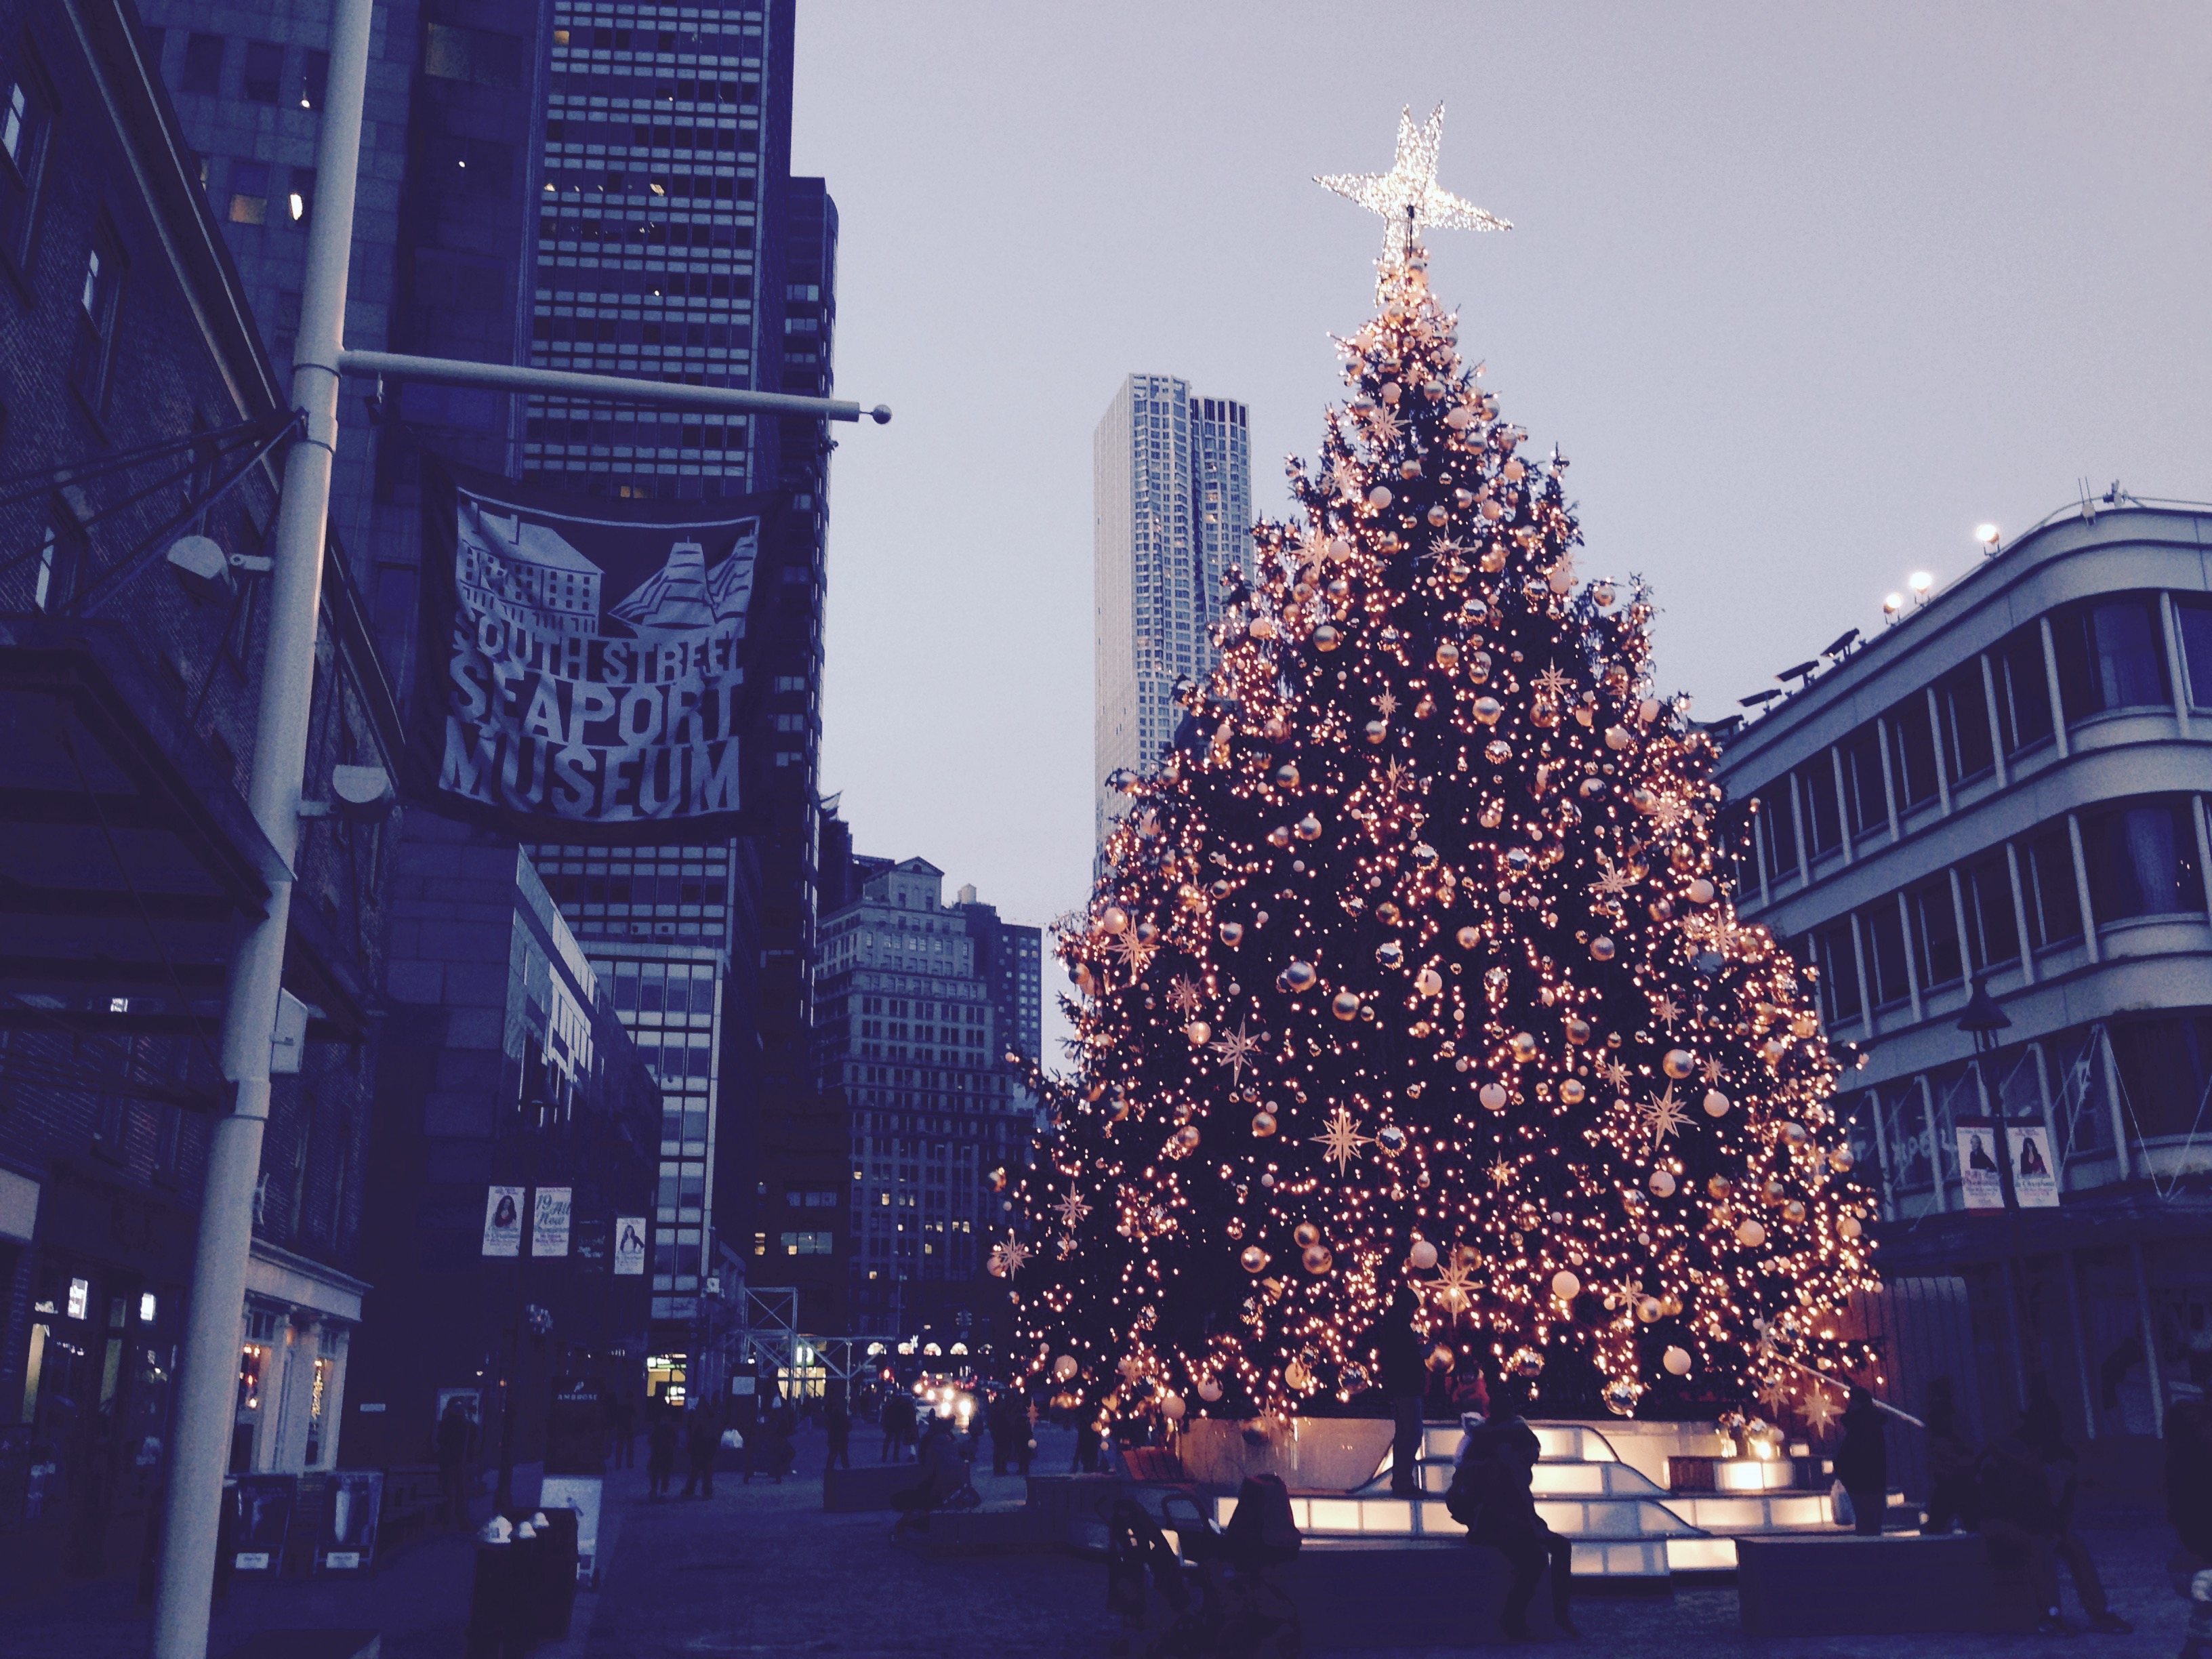 South Street Seaport tree